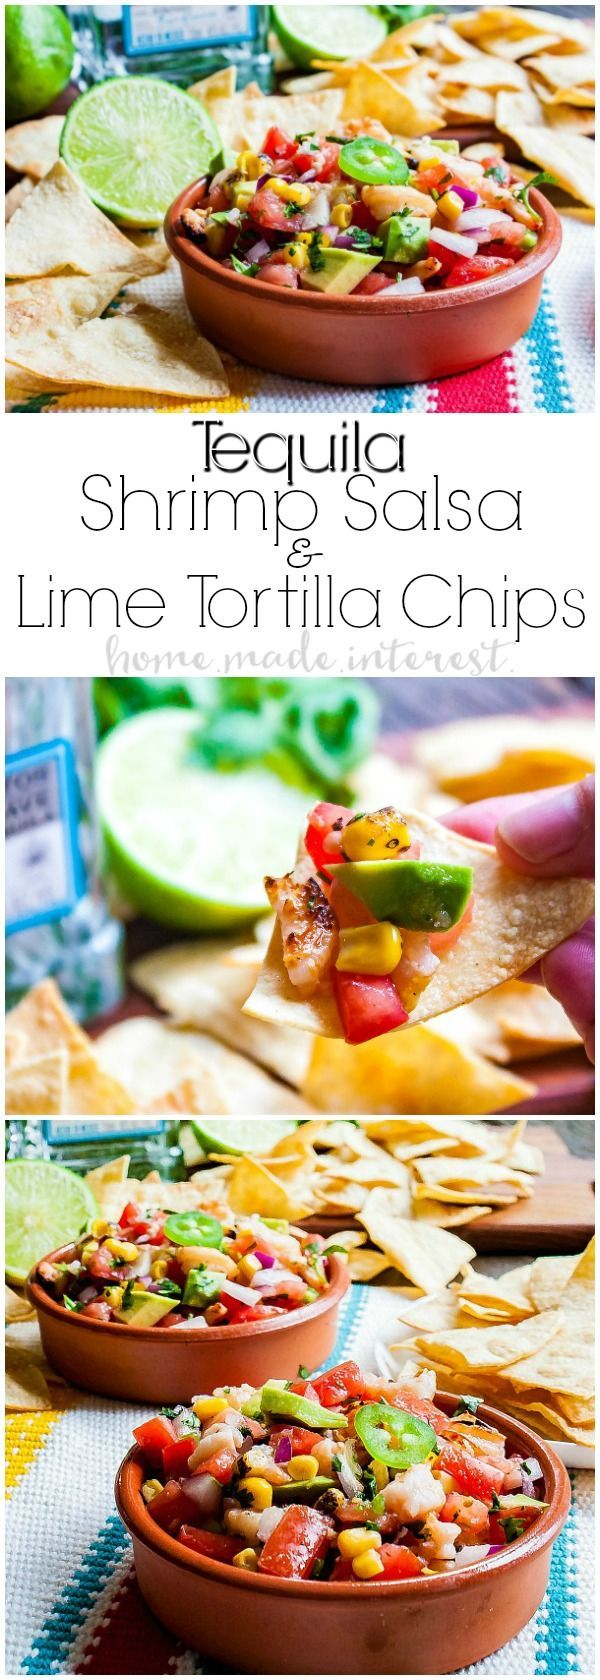 Tequila Shrimp Salsa with Tequila Lime Chips | This fresh salsa with grilled tequila shrimp is a perfect appetizer recipe for Cinco de Mayo. Tequila Shrimp Salsa with Tequila Lime Chips is made with fresh tomatoes, onions, jalapenos and cilantro tossed with grilled tequila shrimp. If you're looking for a summer salsa recipe for your next bbq you'll love this homemade salsa recipe! AD